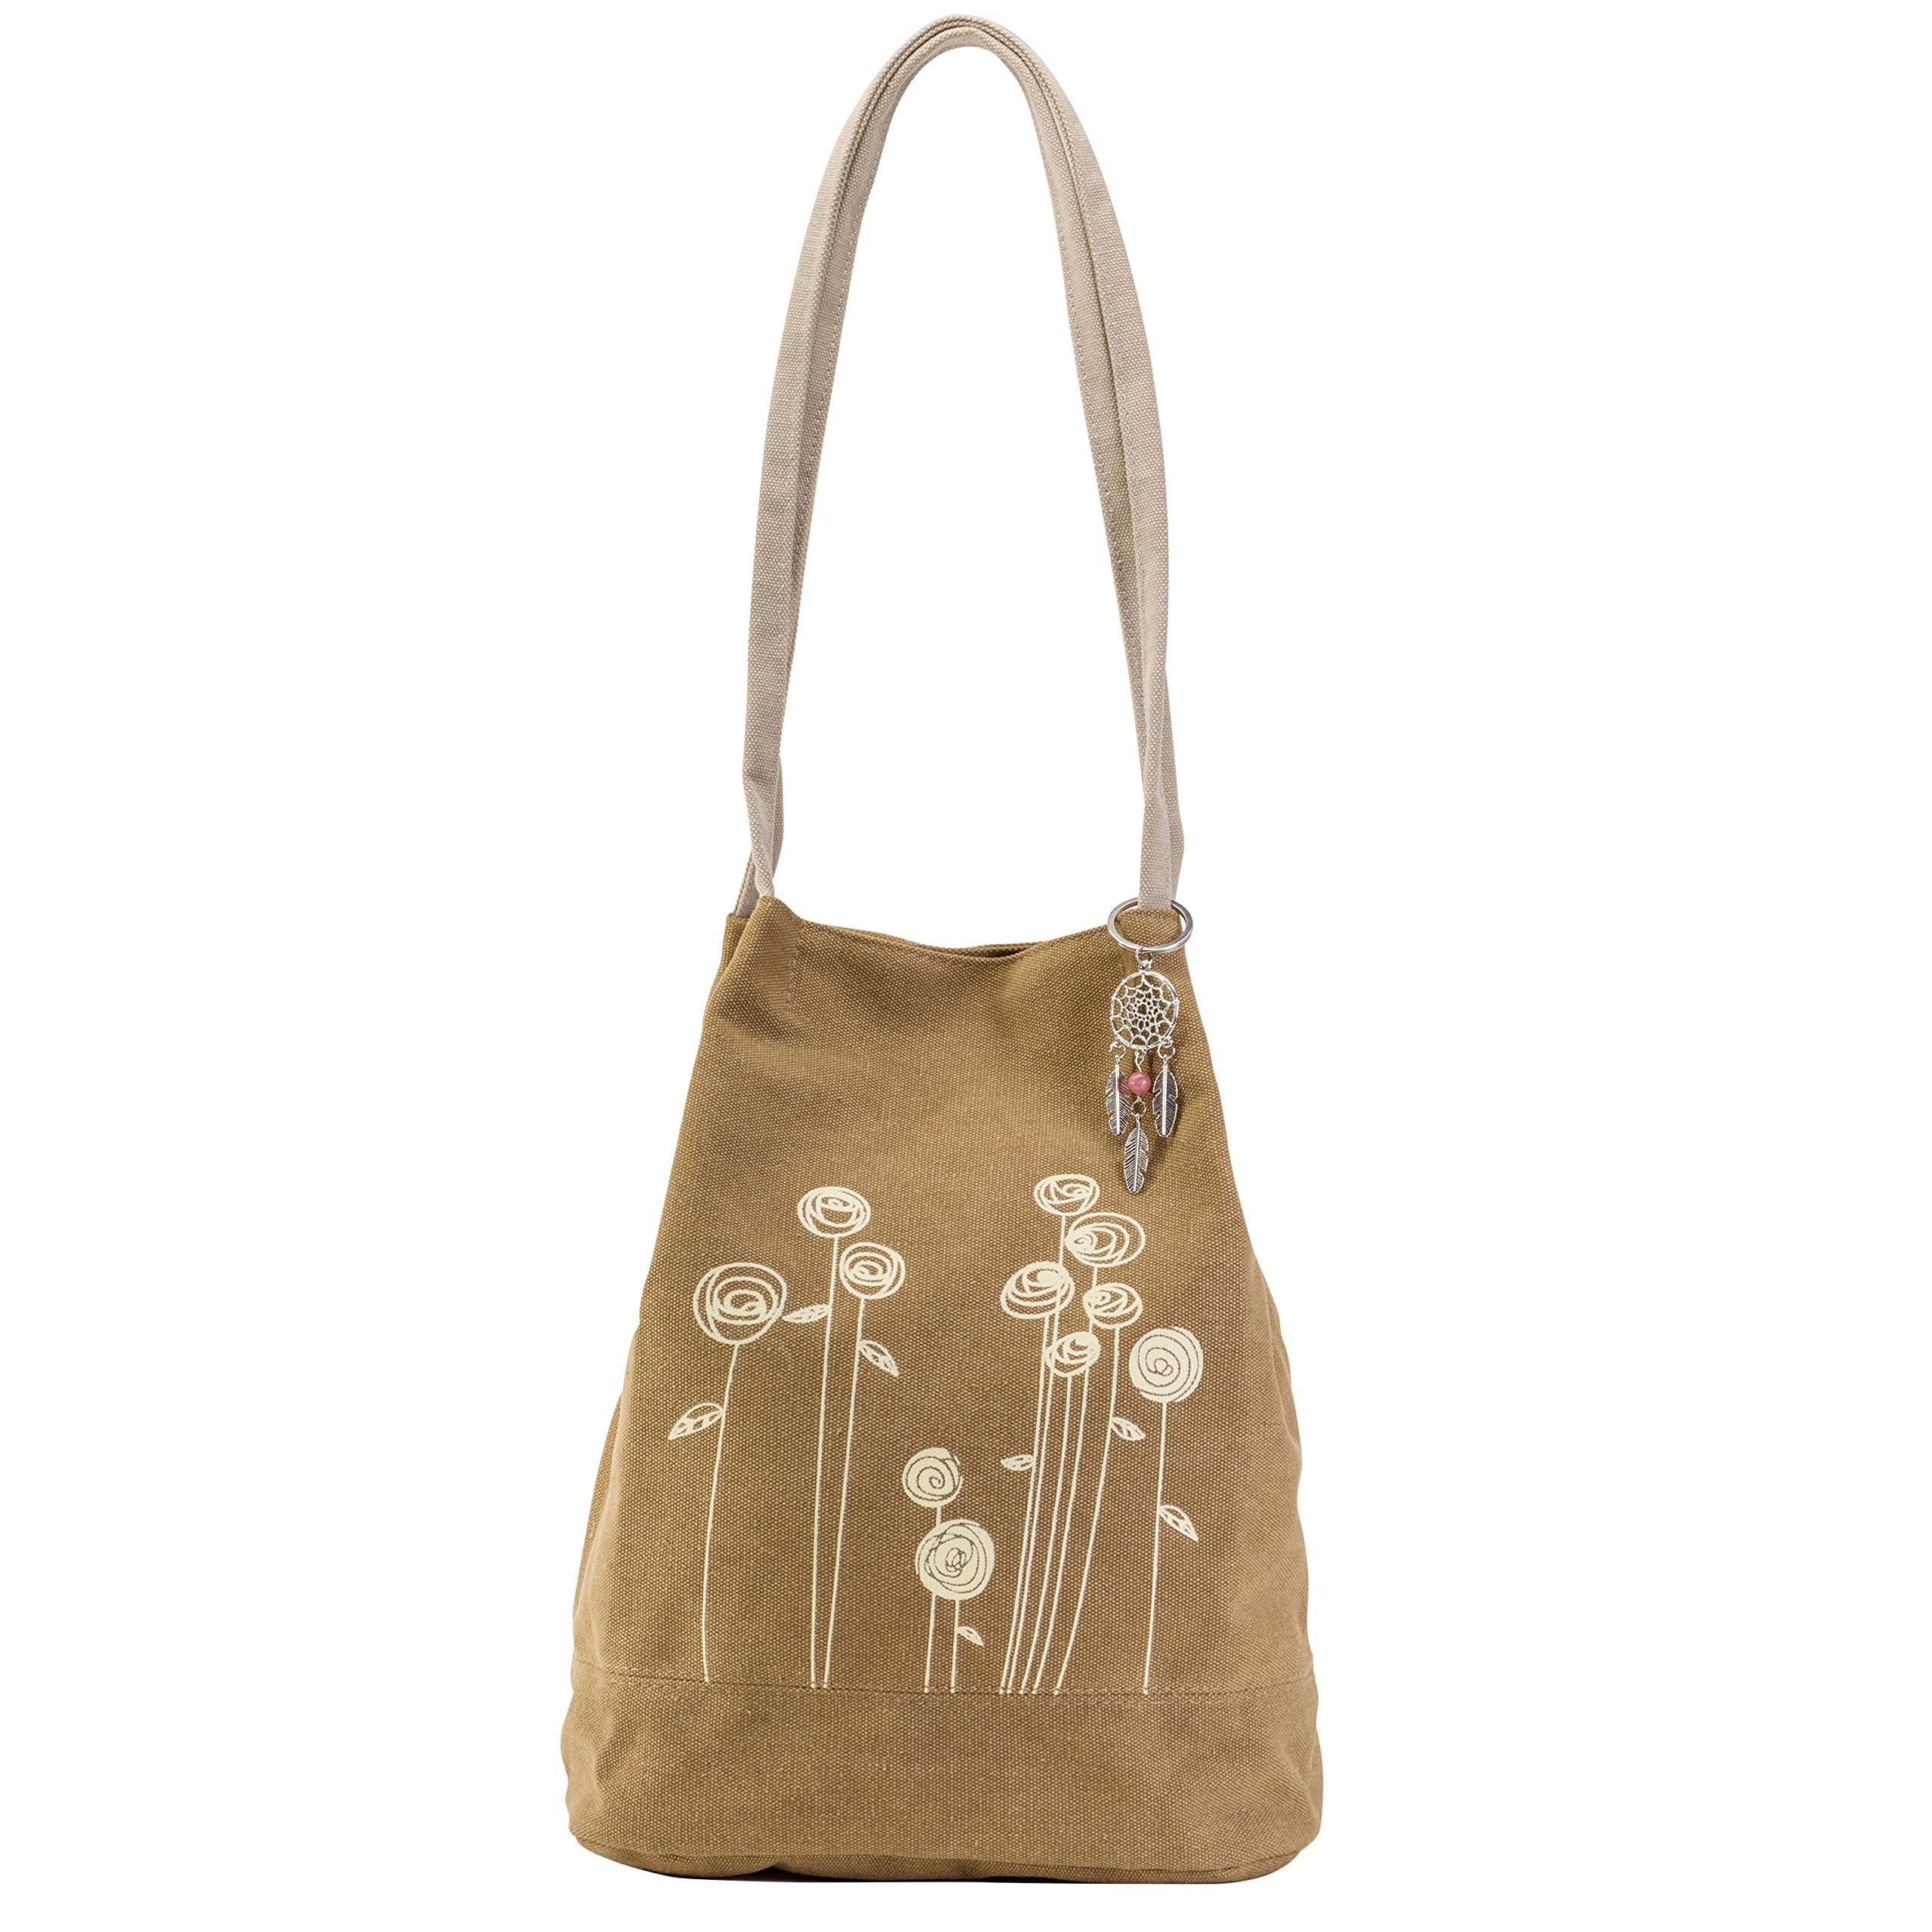 Cute Boho Purse Bag - Bohemian Style Flower Hippie Handbag - Small Brown Gypsy Canvas Tote